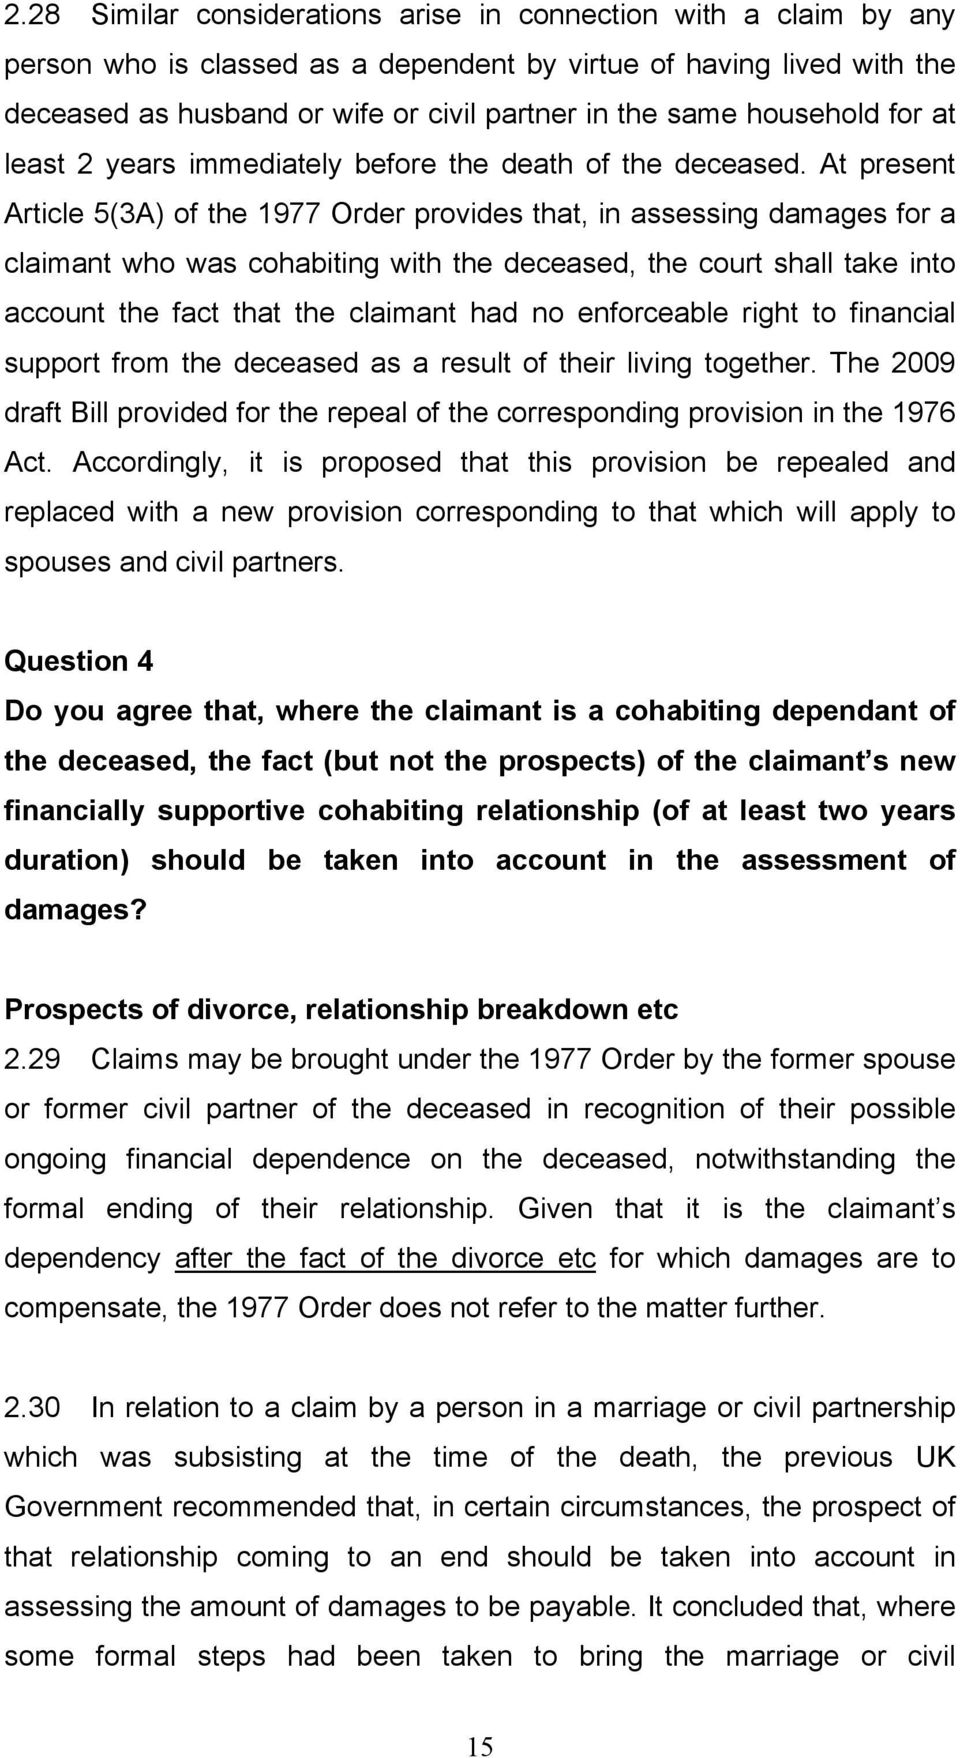 At present Article 5(3A) of the 1977 Order provides that, in assessing damages for a claimant who was cohabiting with the deceased, the court shall take into account the fact that the claimant had no